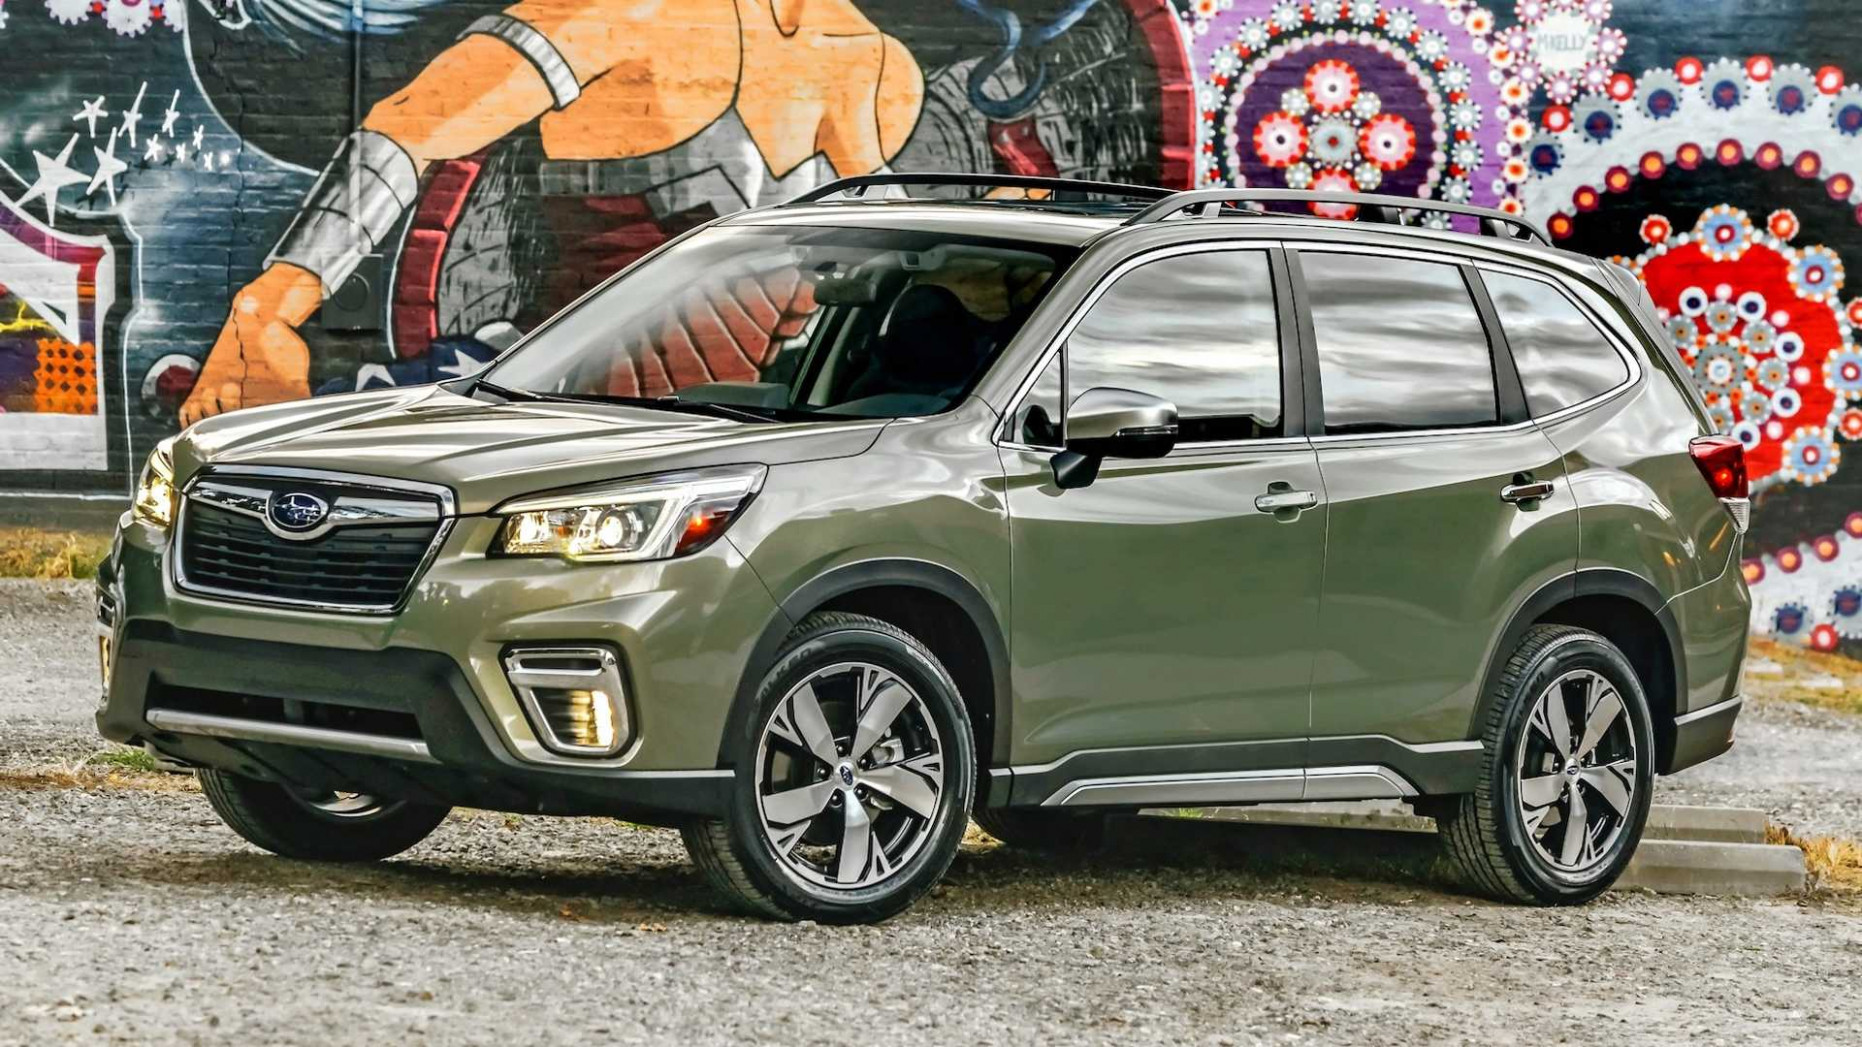 8 Subaru Forester Gets Price Bump, More Standard Safety Kit - 2020 subaru forester price